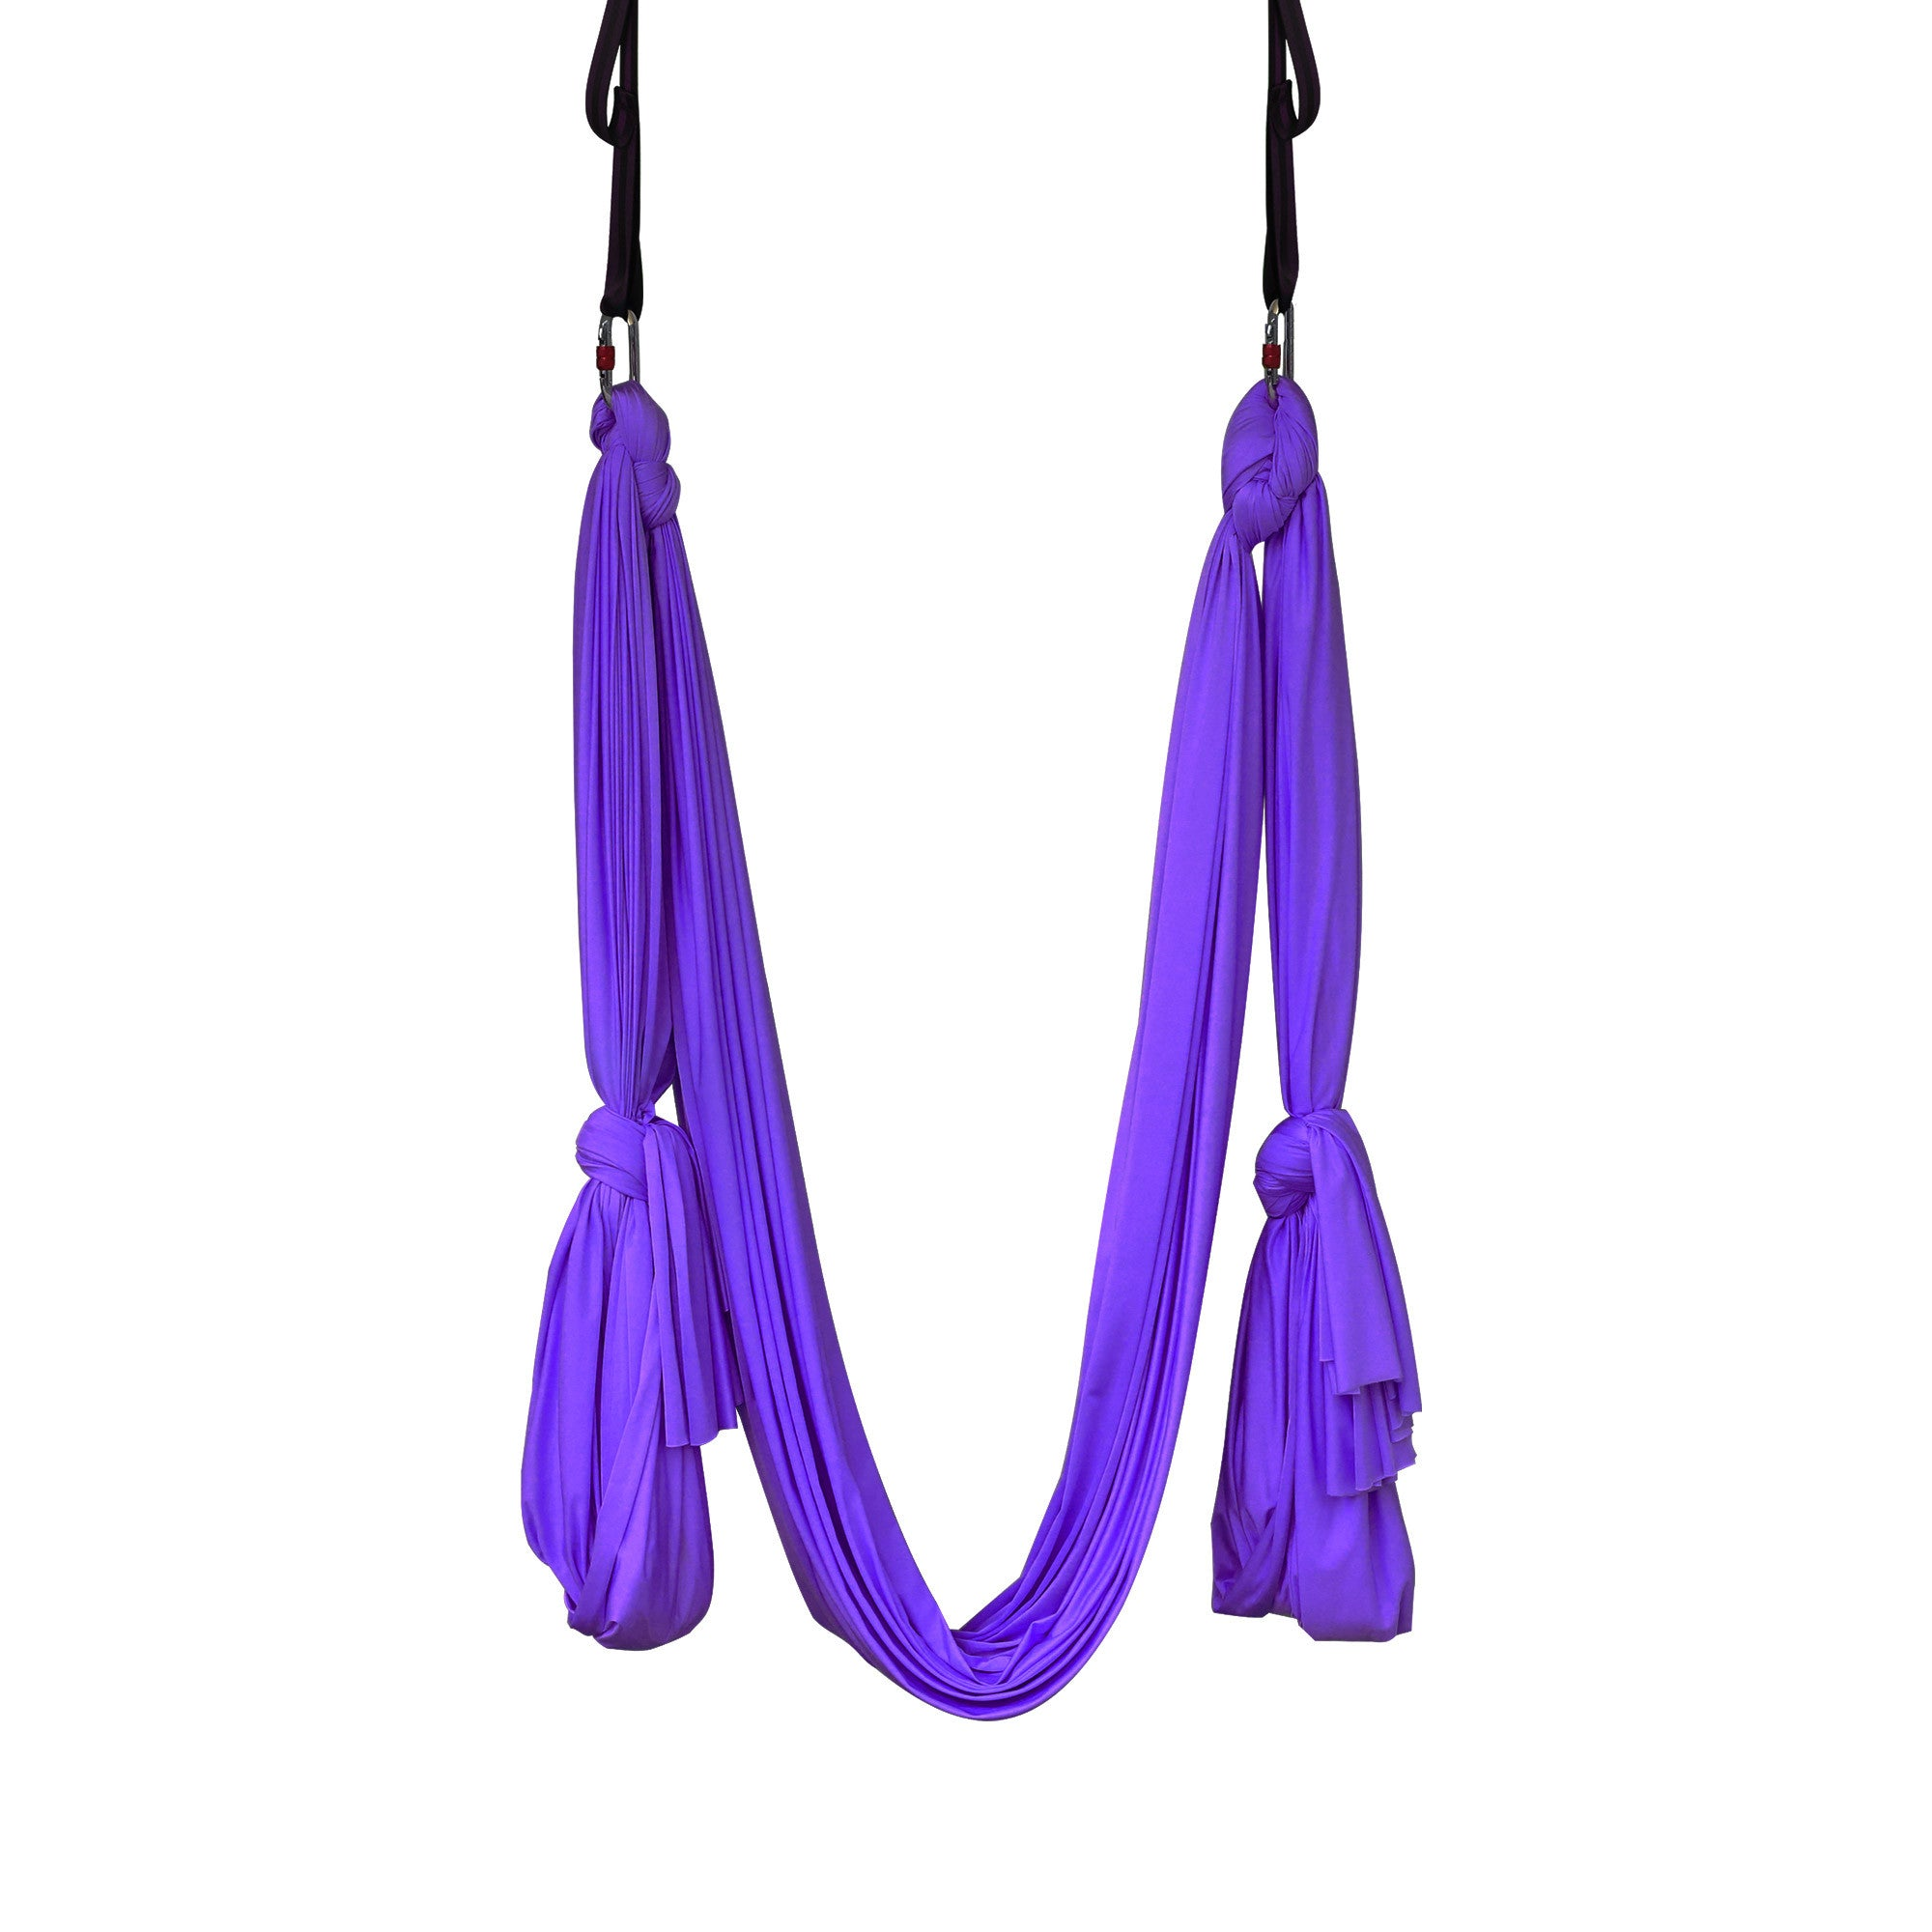 Medium image of premium aerial yoga hammock